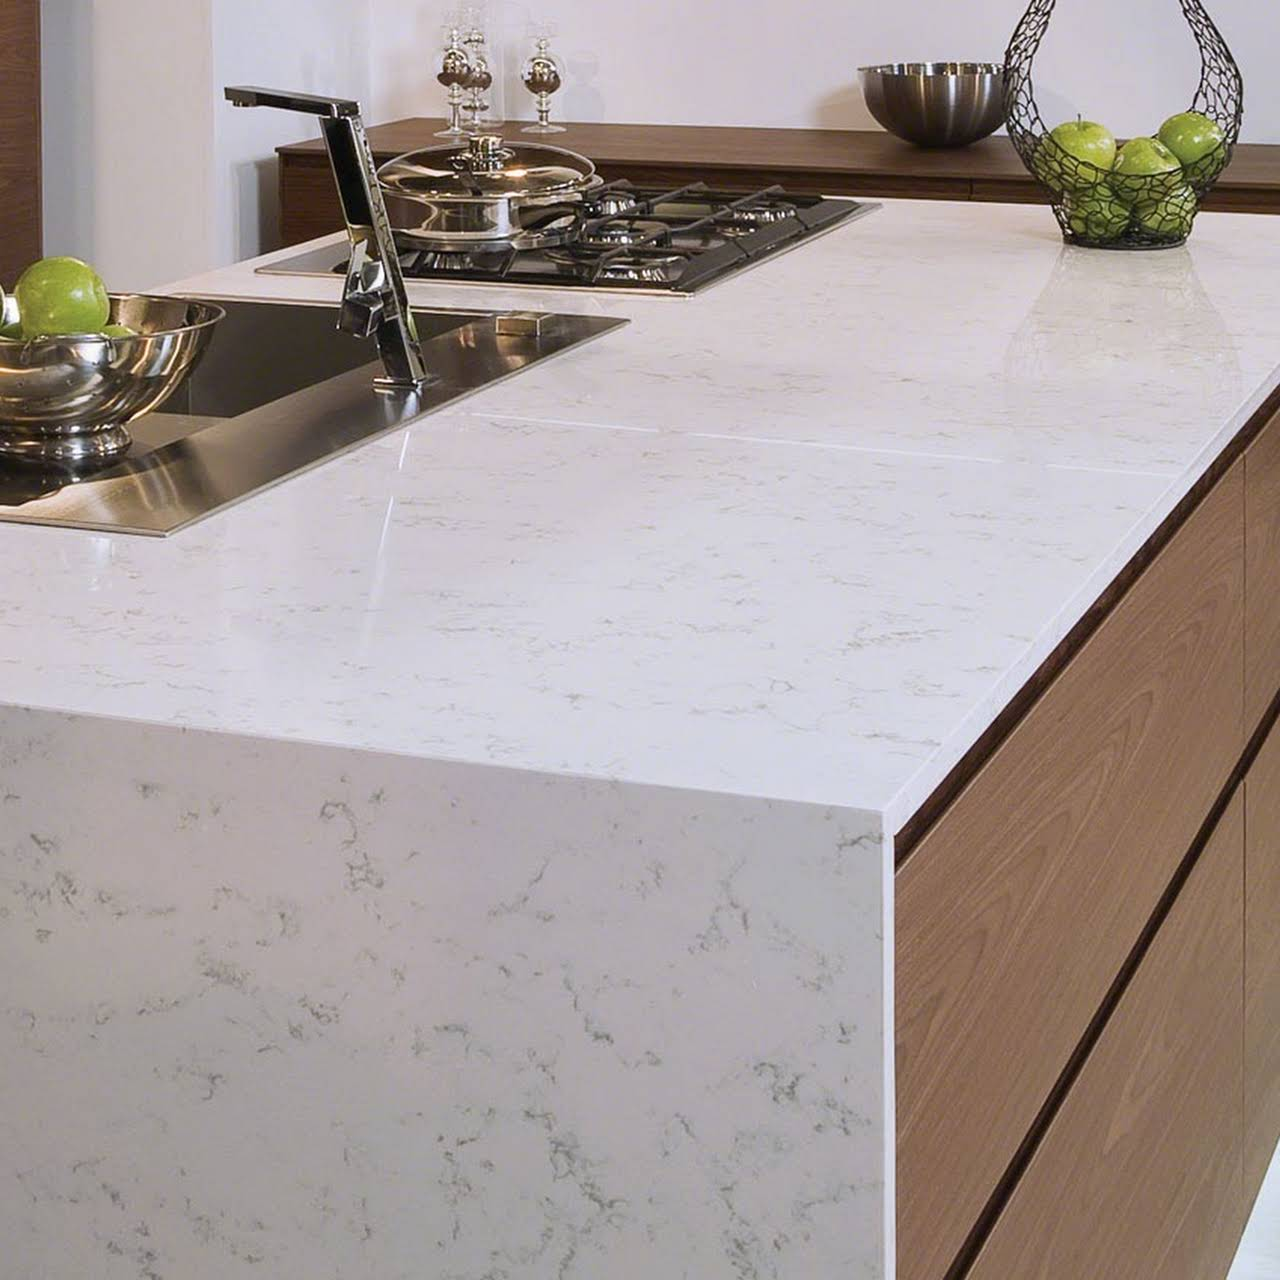 seams noticeable seam a should how be quartz wall qkbwk and on countertops counter countertop install questions installation the